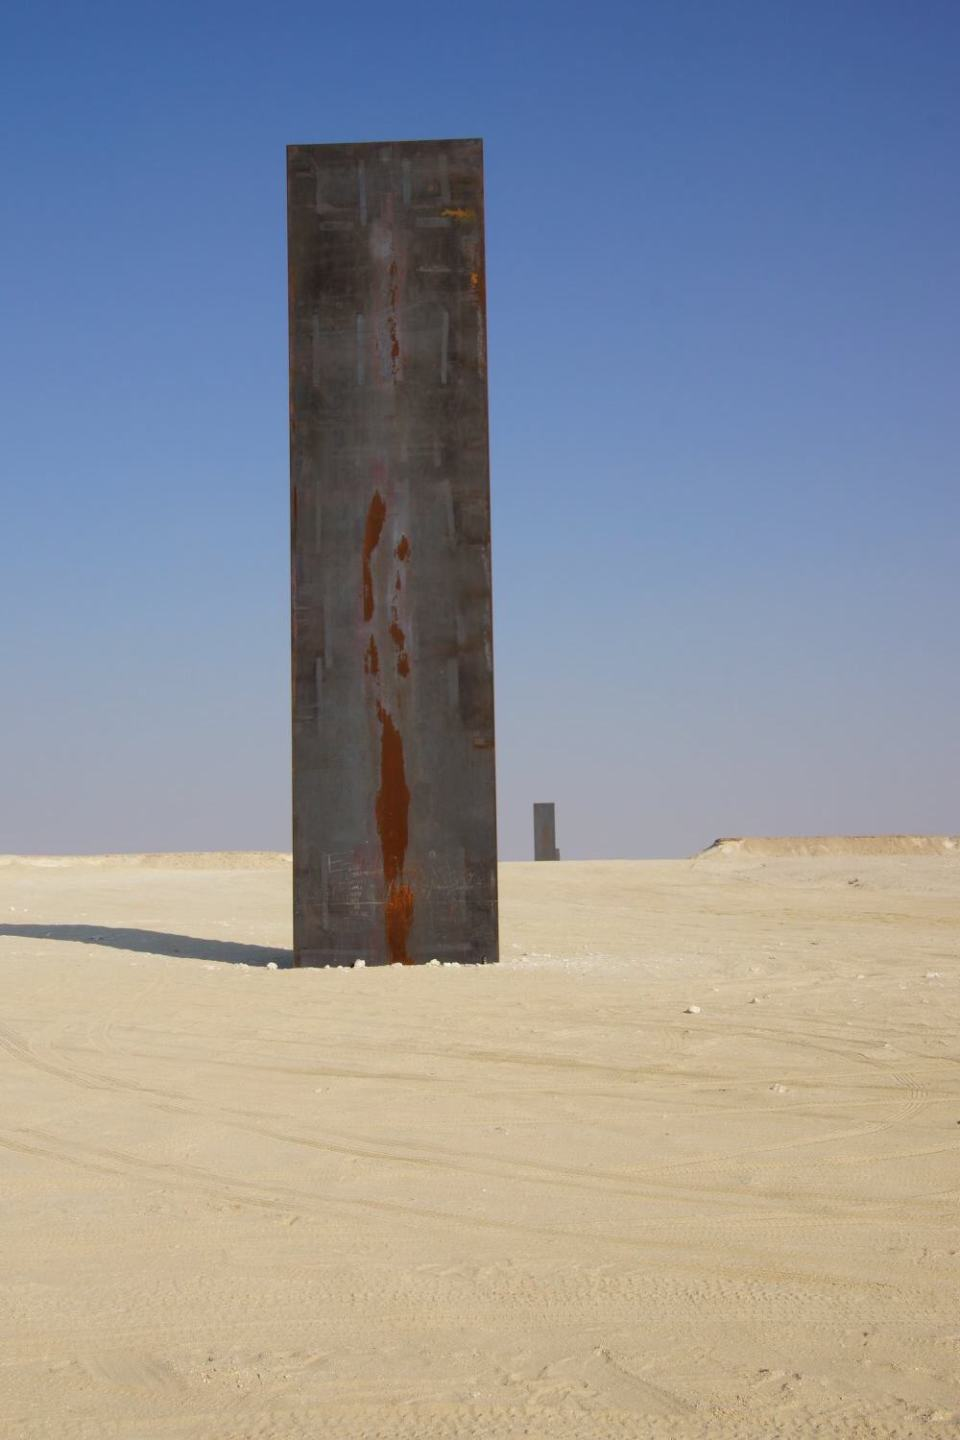 East meets West - one of the best things to see and things to do in Qatar